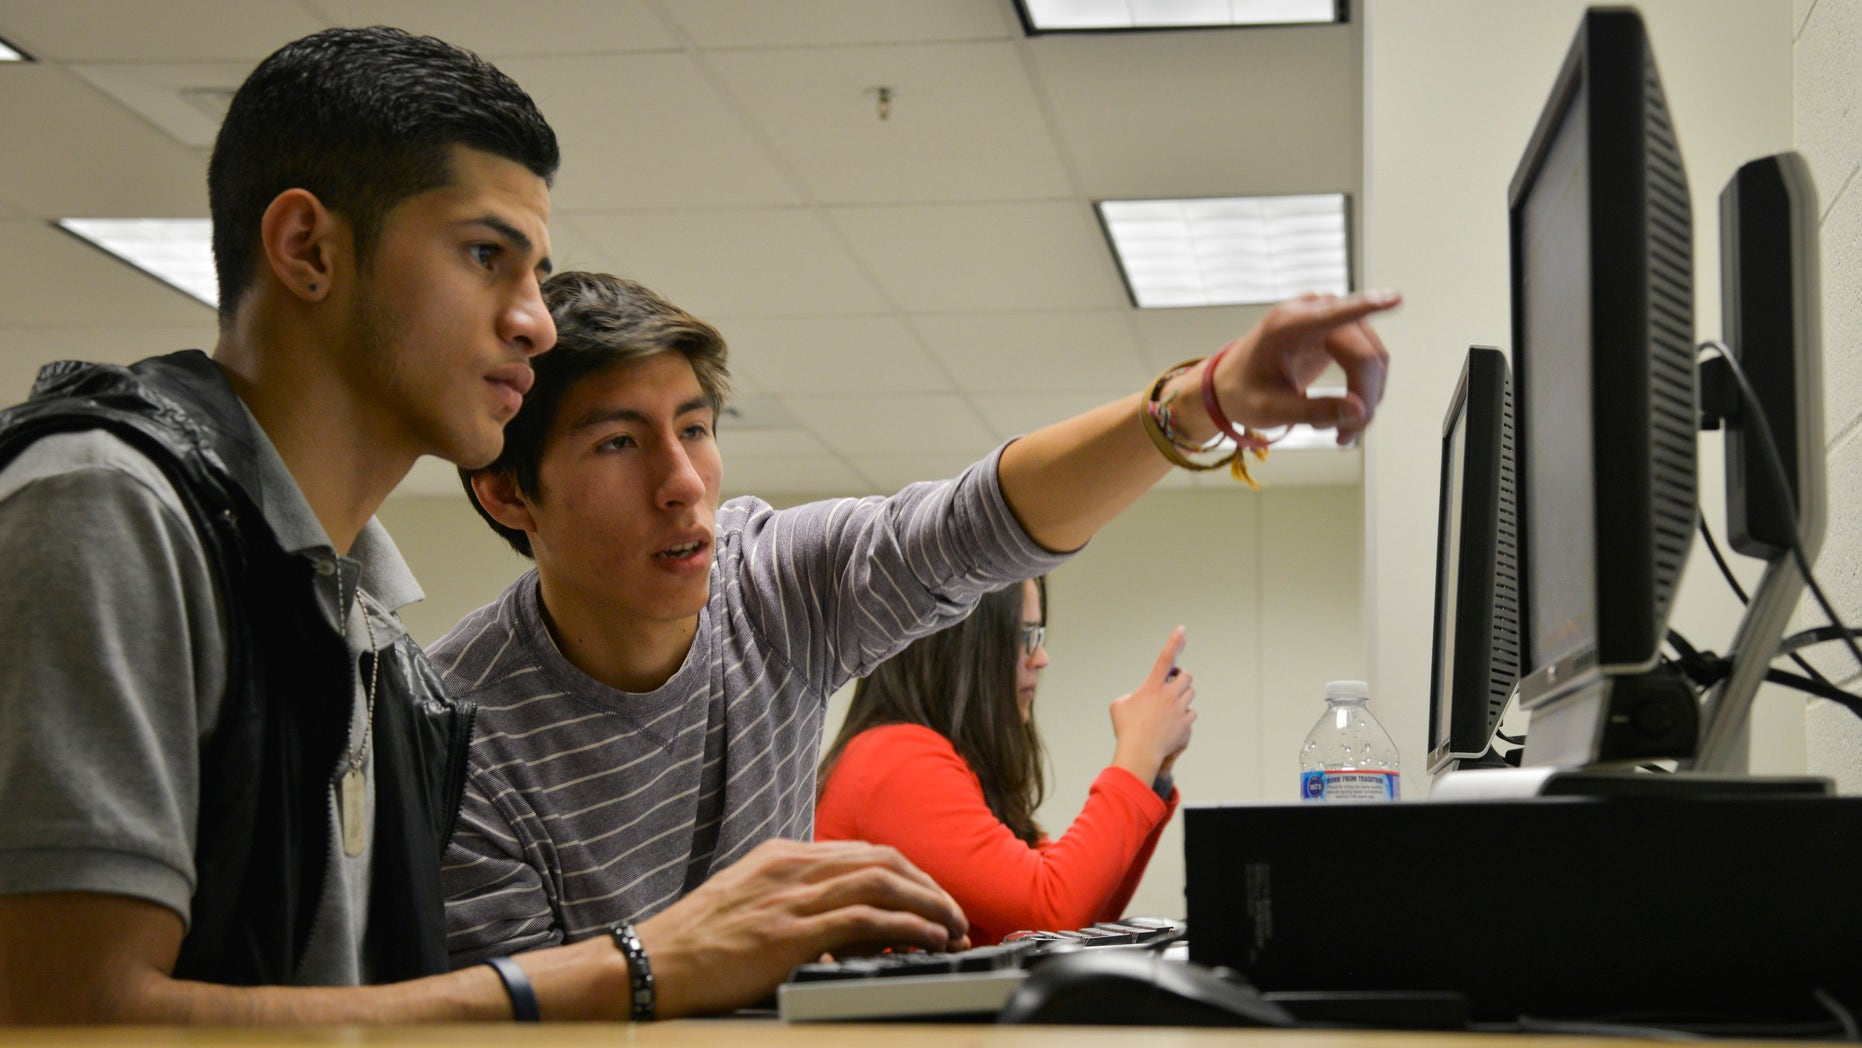 ARLINGTON, VA - JANUARY 23: